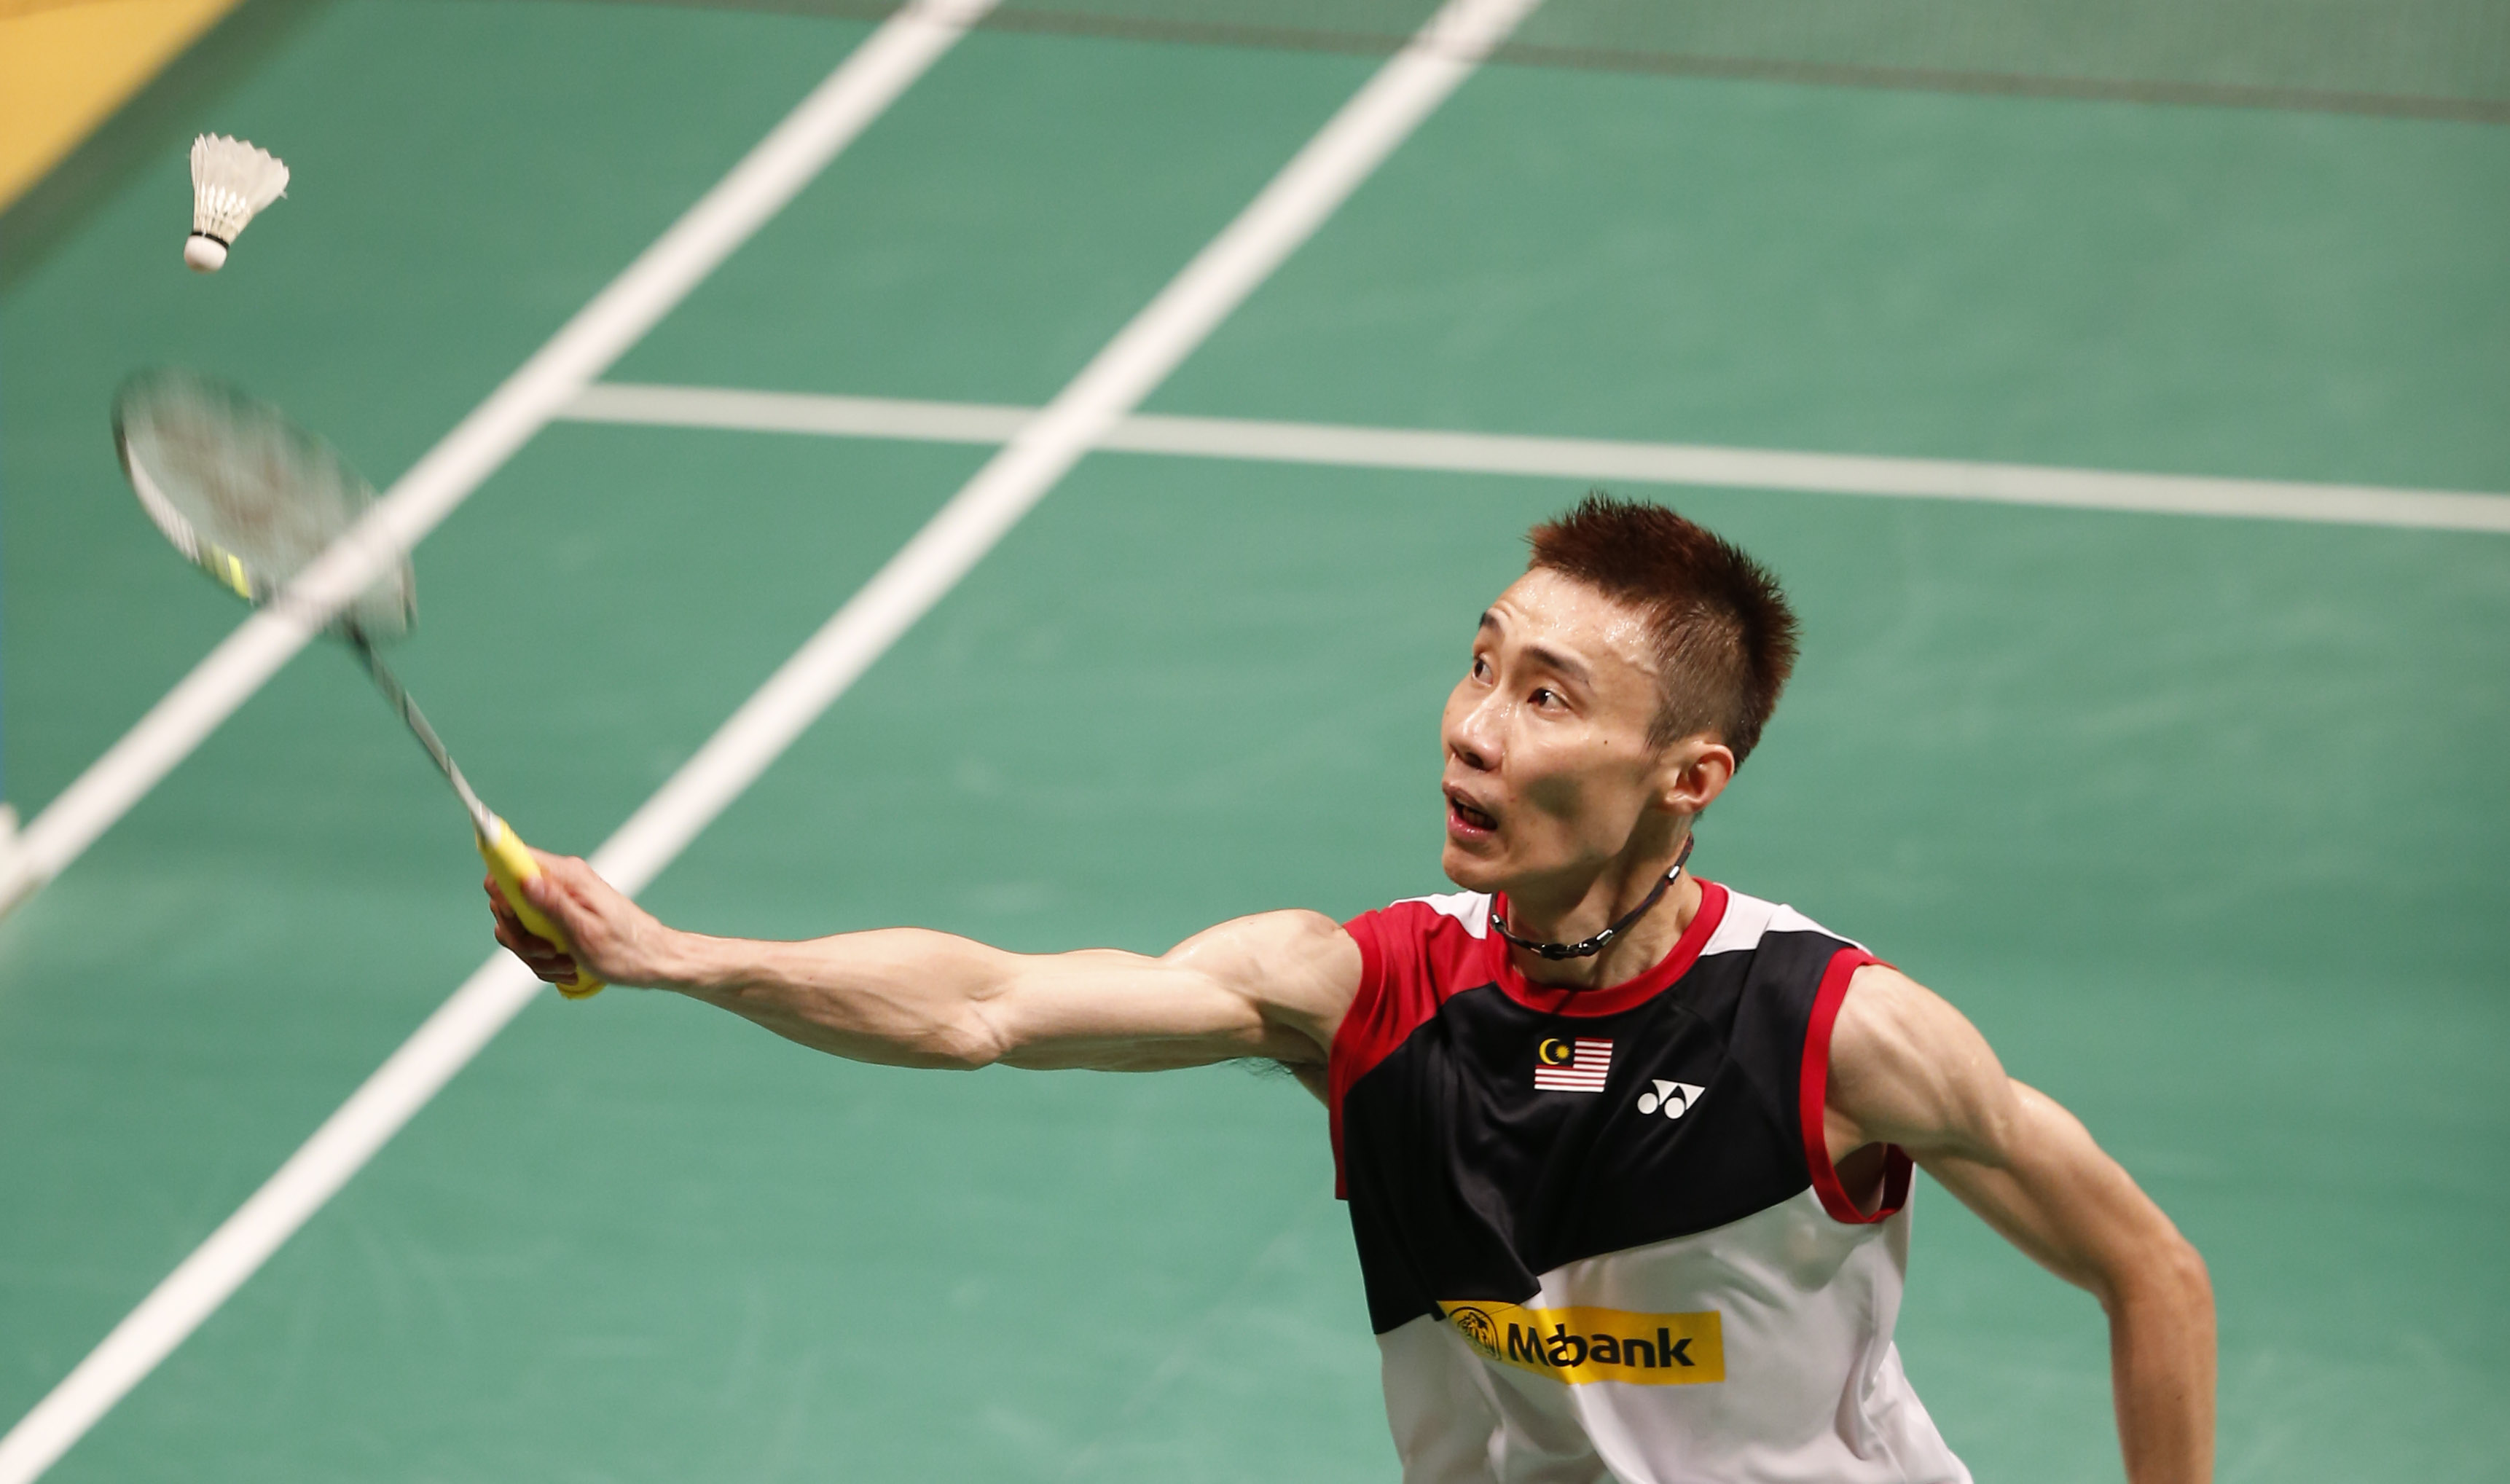 Malaysia's Lee Chong Wei returns the shuttlecock to China's Wang Zhengming during their men's singles match at the Malaysia Open Badminton Super Series in Kuala Lumpur, Malaysia, Thursday, Jan. 16, 2014